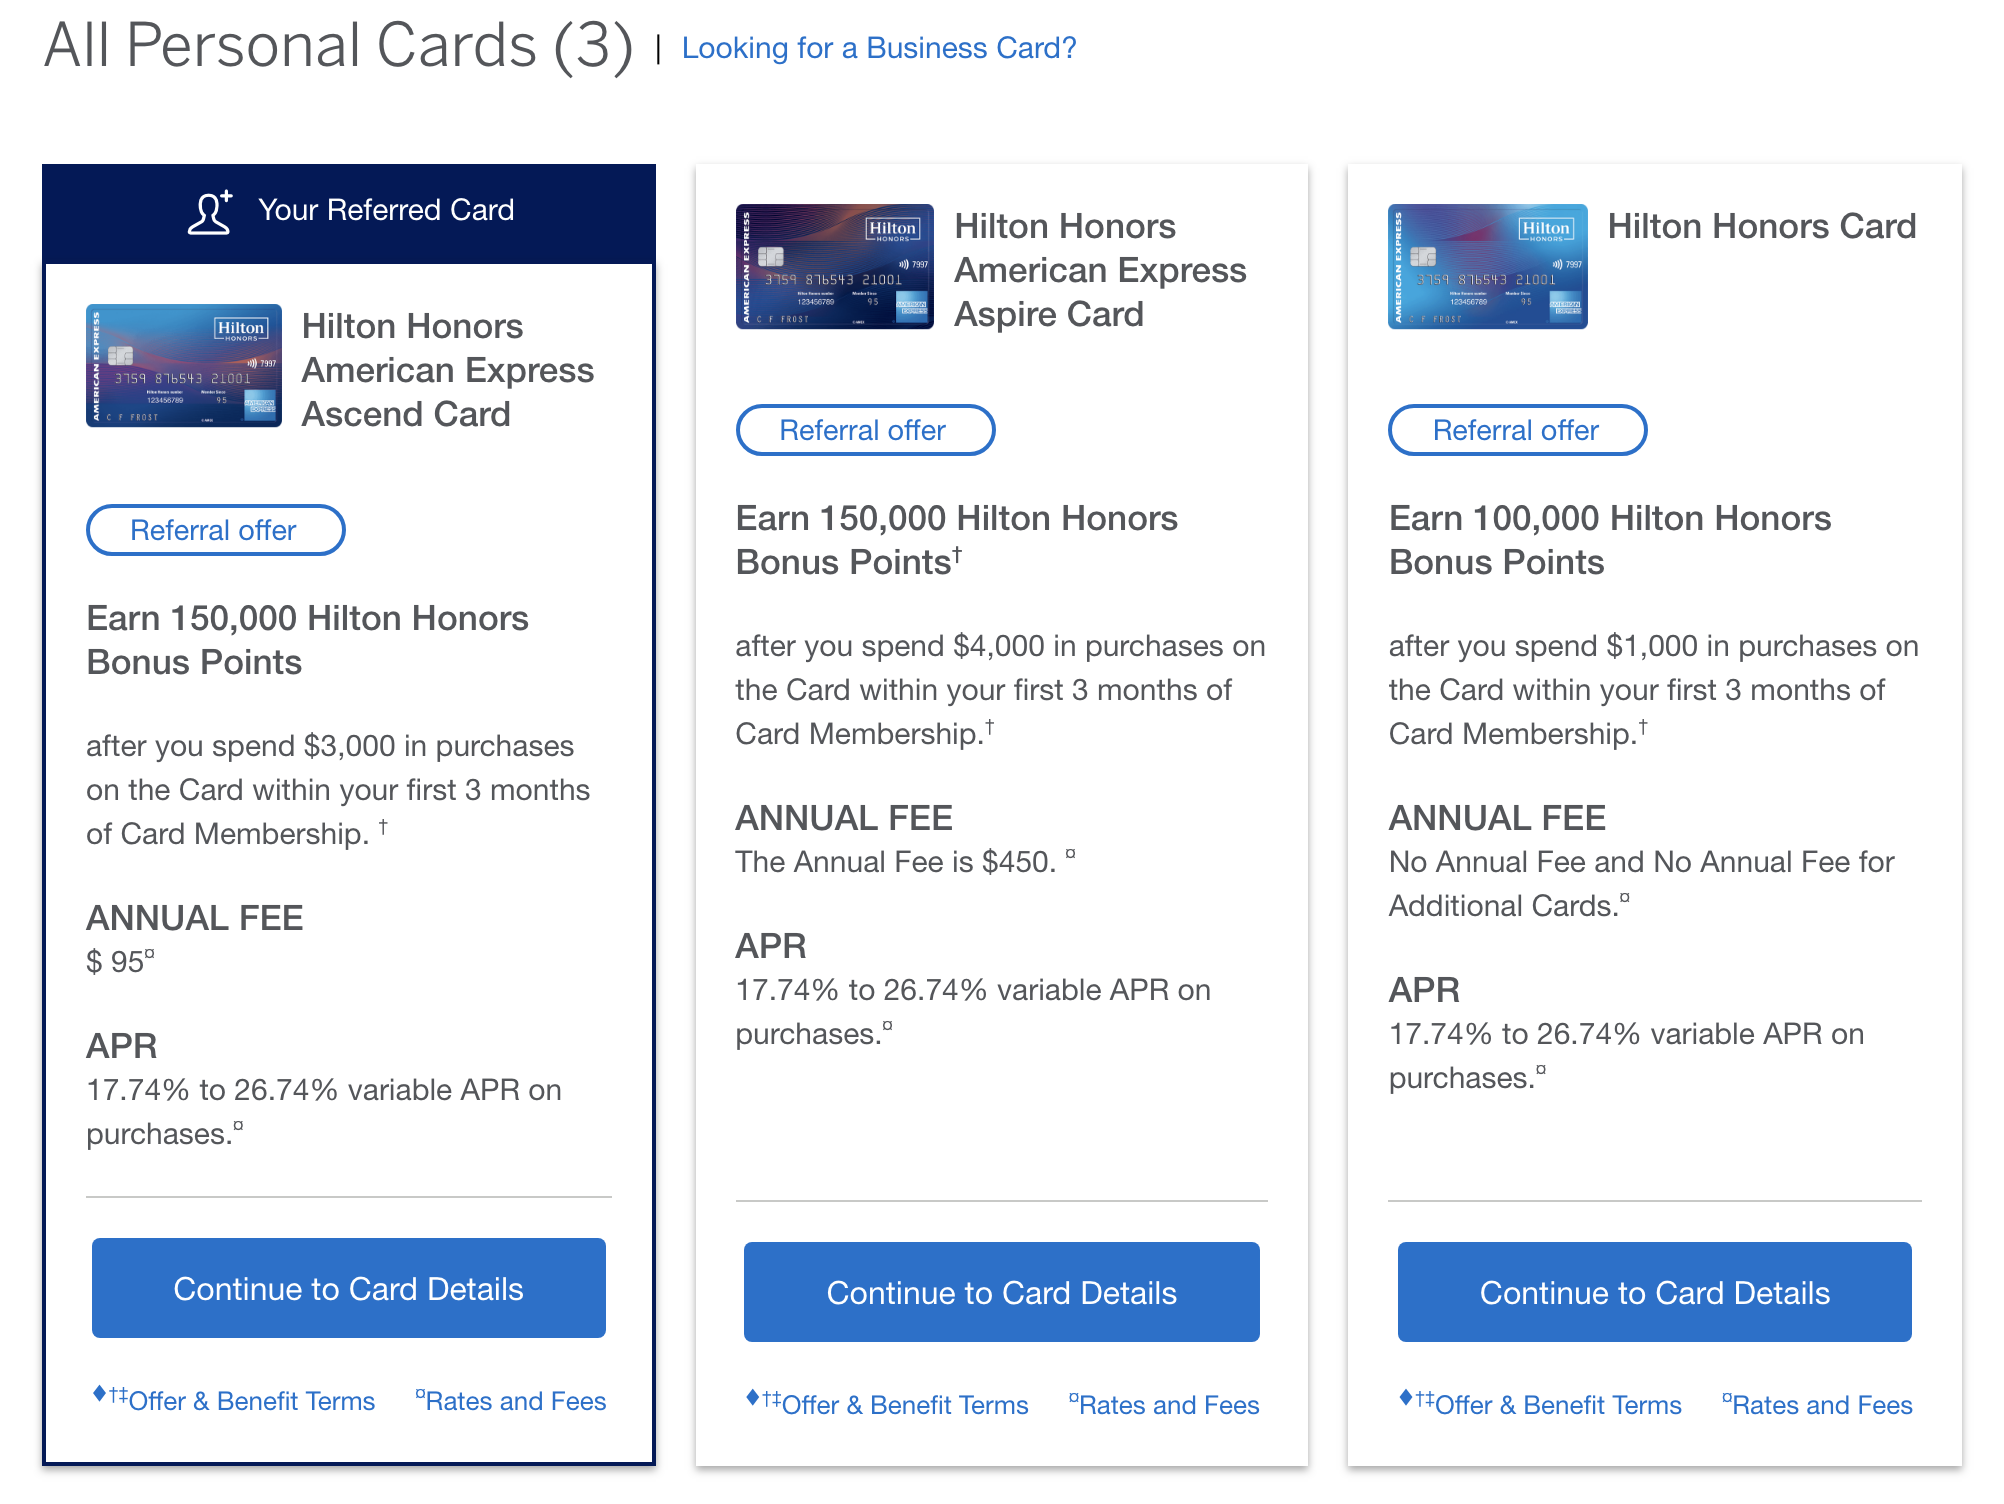 Amex Expands Referral Program: Your Chance to Earn Extra